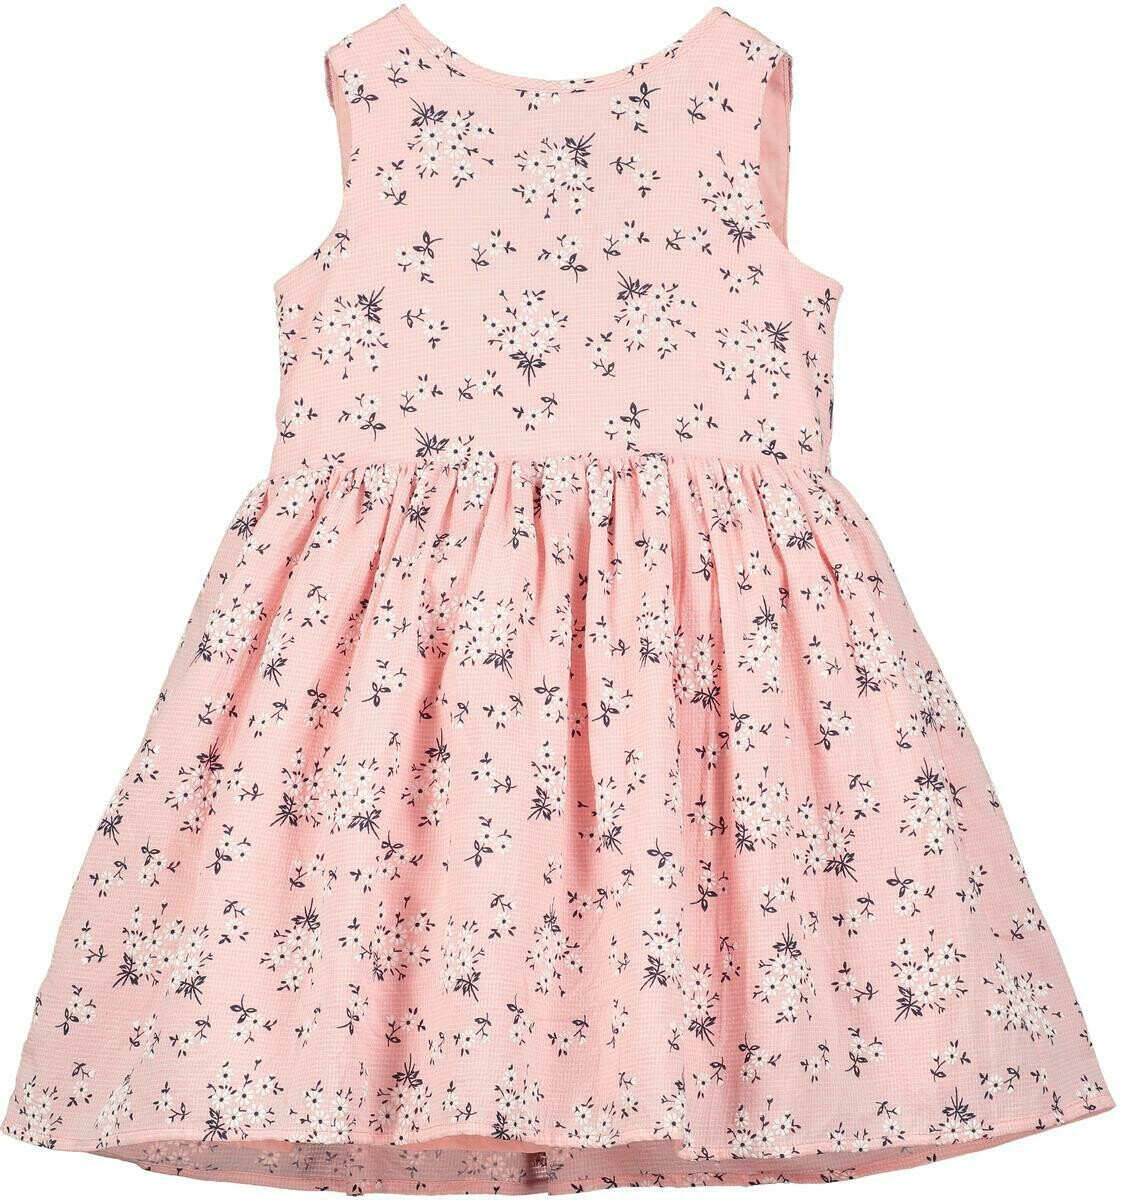 Vignette Jewel Dress - Pink Floral